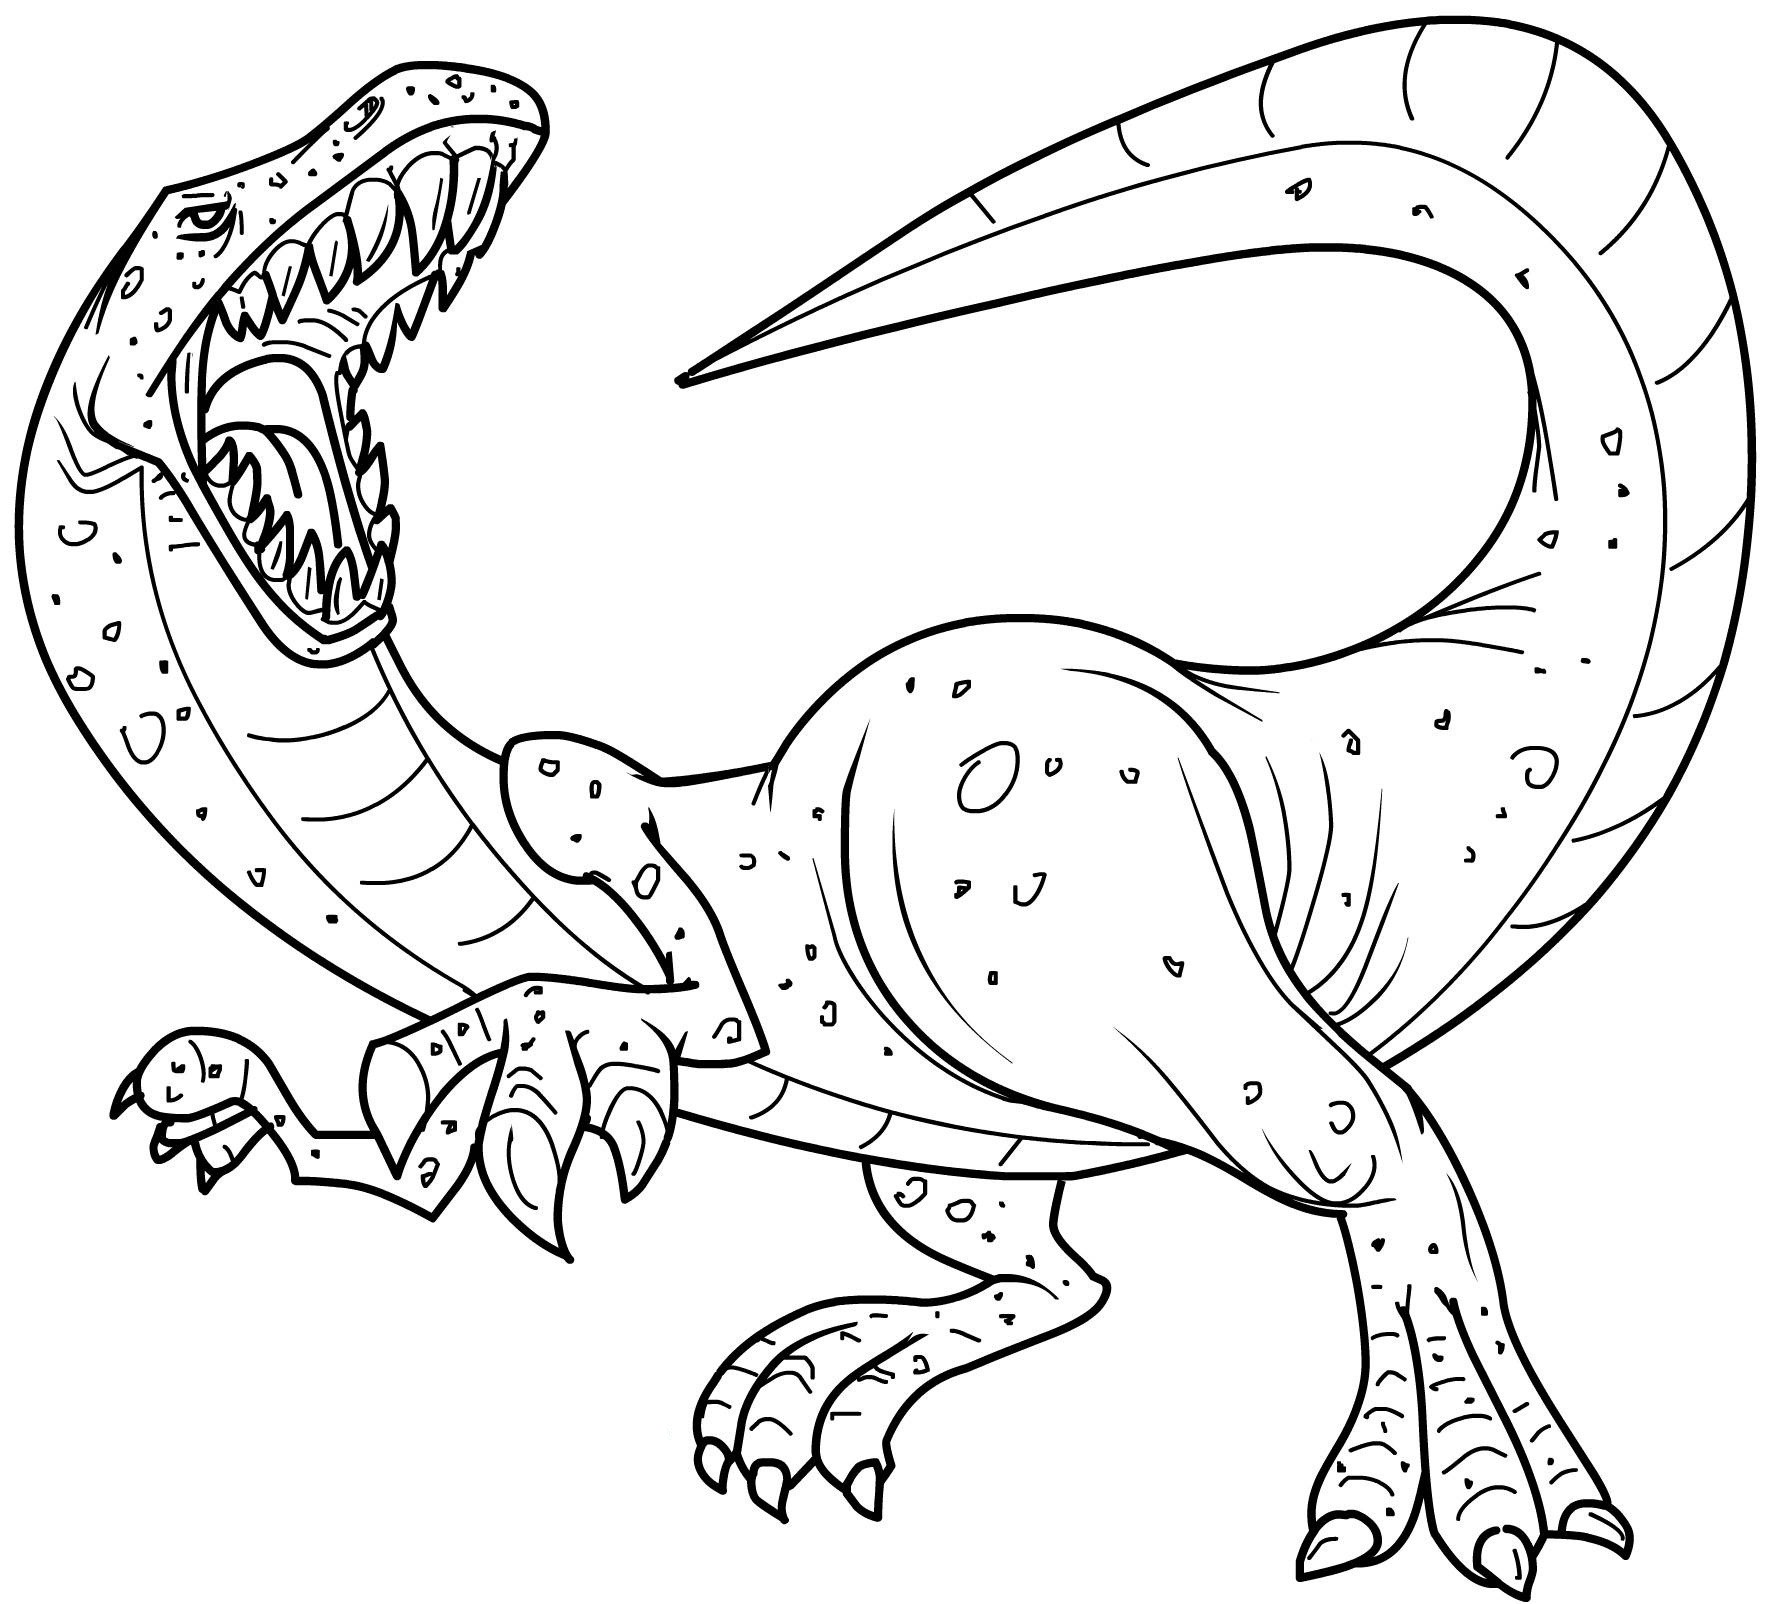 colouring in dinosaurs baby dinosaur coloring pages for preschoolers activity colouring in dinosaurs